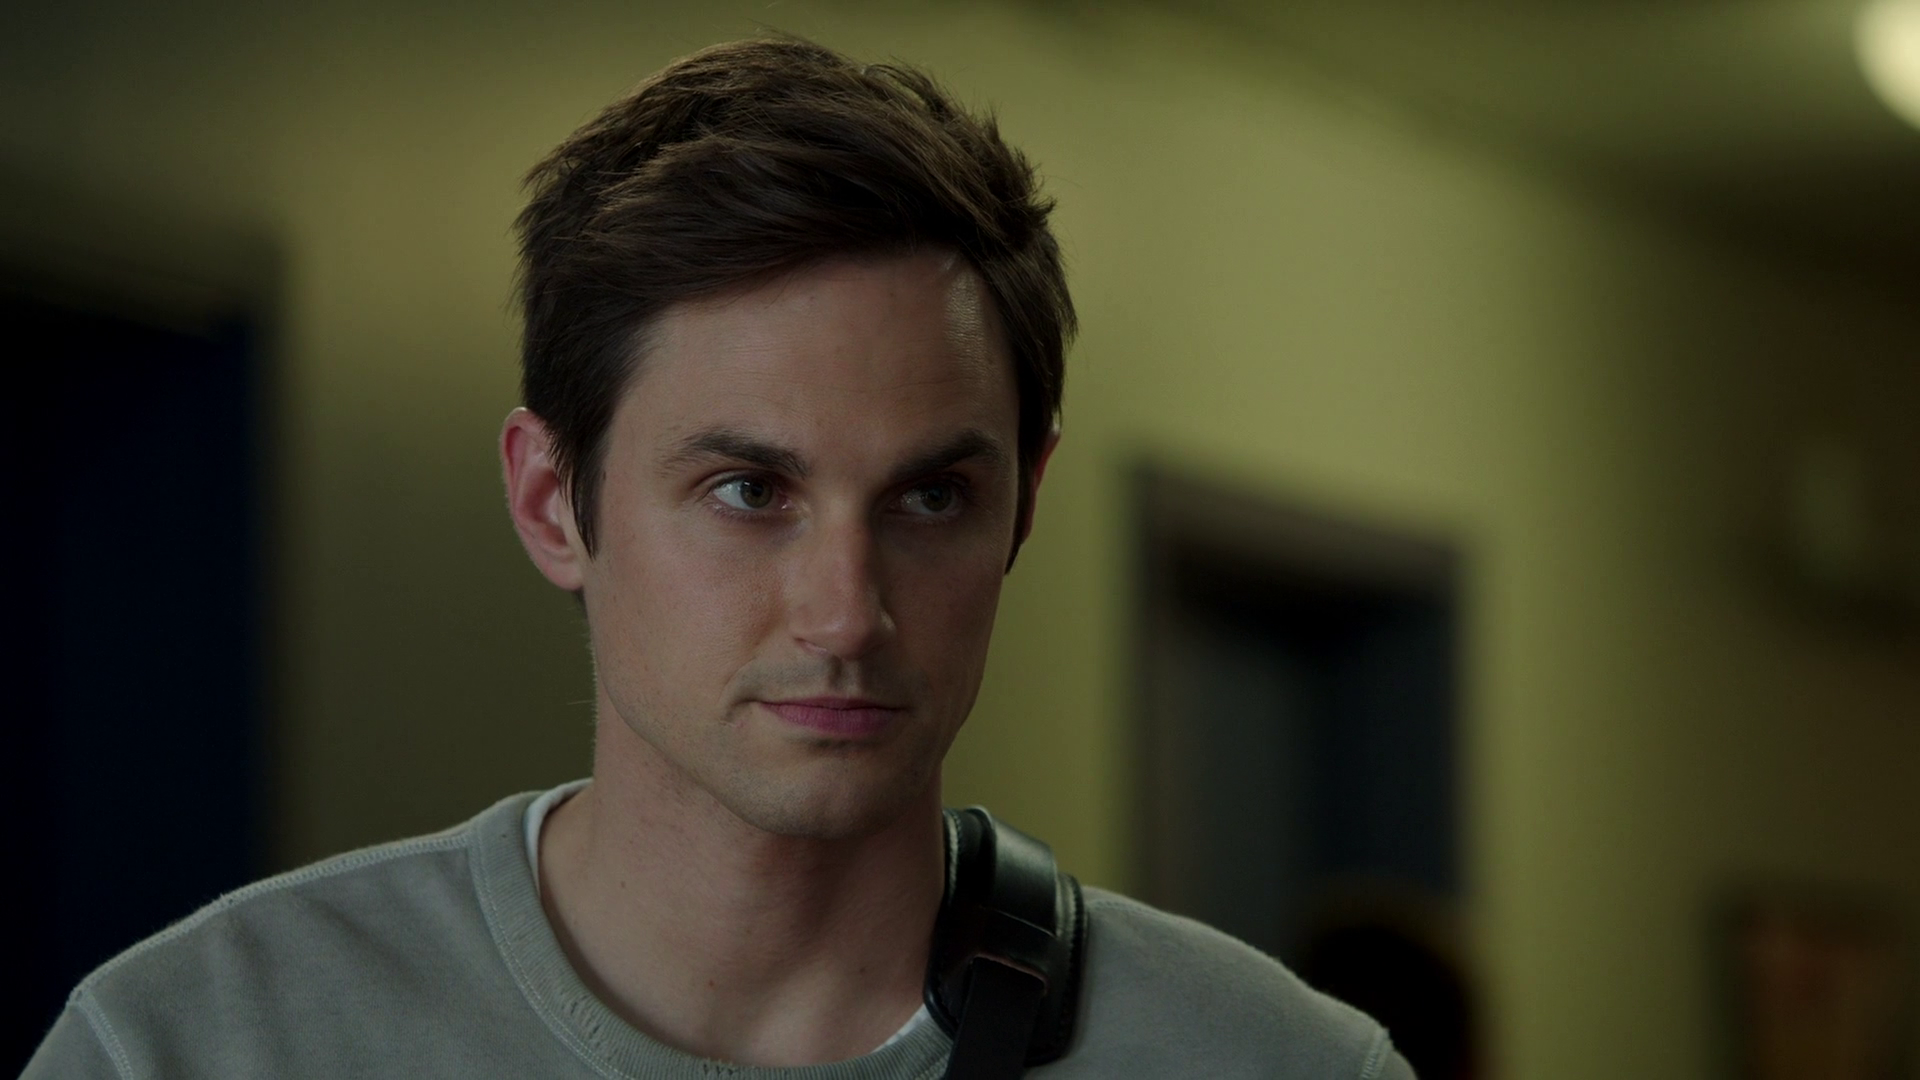 Henry Mills | Once Upon a Time Wiki | FANDOM powered by Wikia